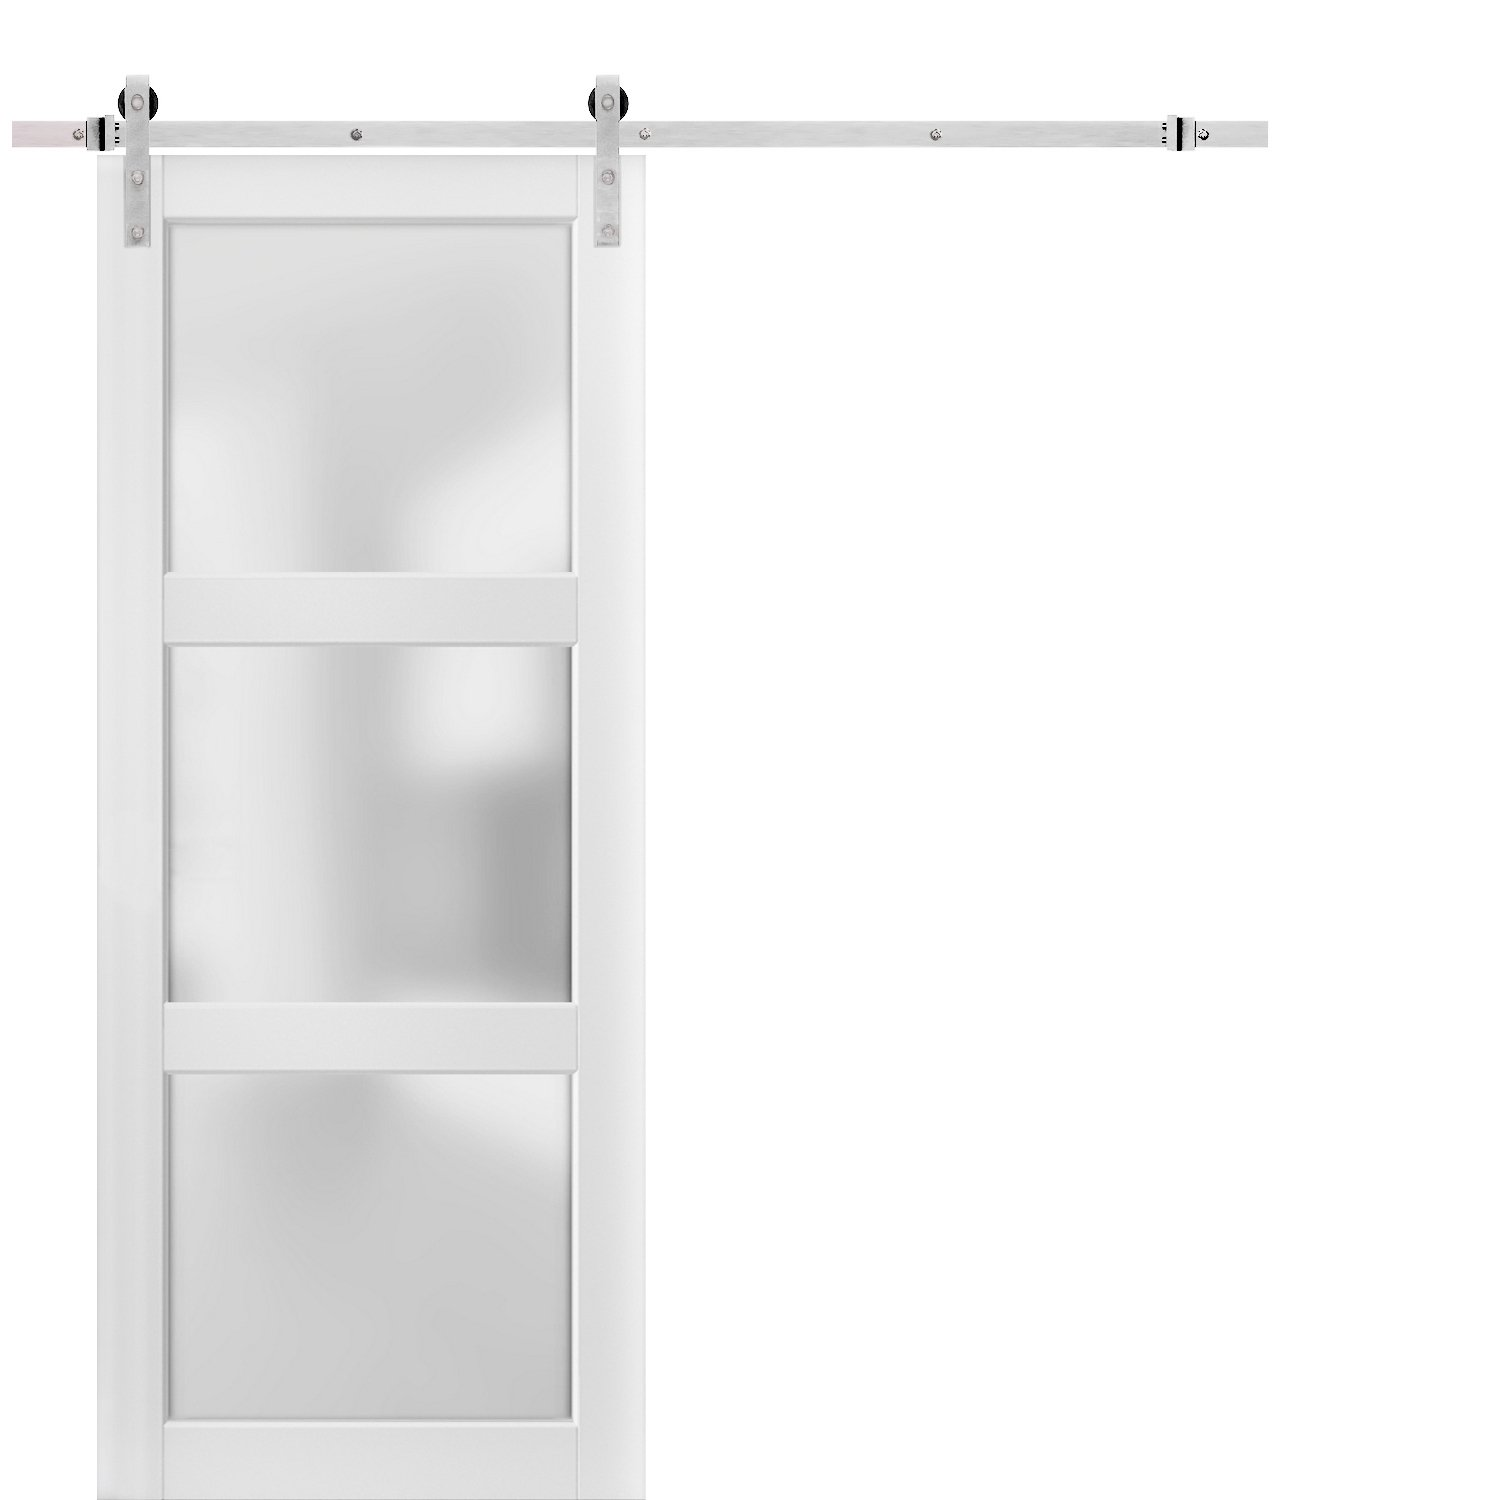 Sturdy Barn Door 18 x 80 inches Frosted Glass Solid Panel Interior Doors Top Mount Stainless Steel 6.6FT Rail Hangers Heavy Set Lucia 2552 Matte Black